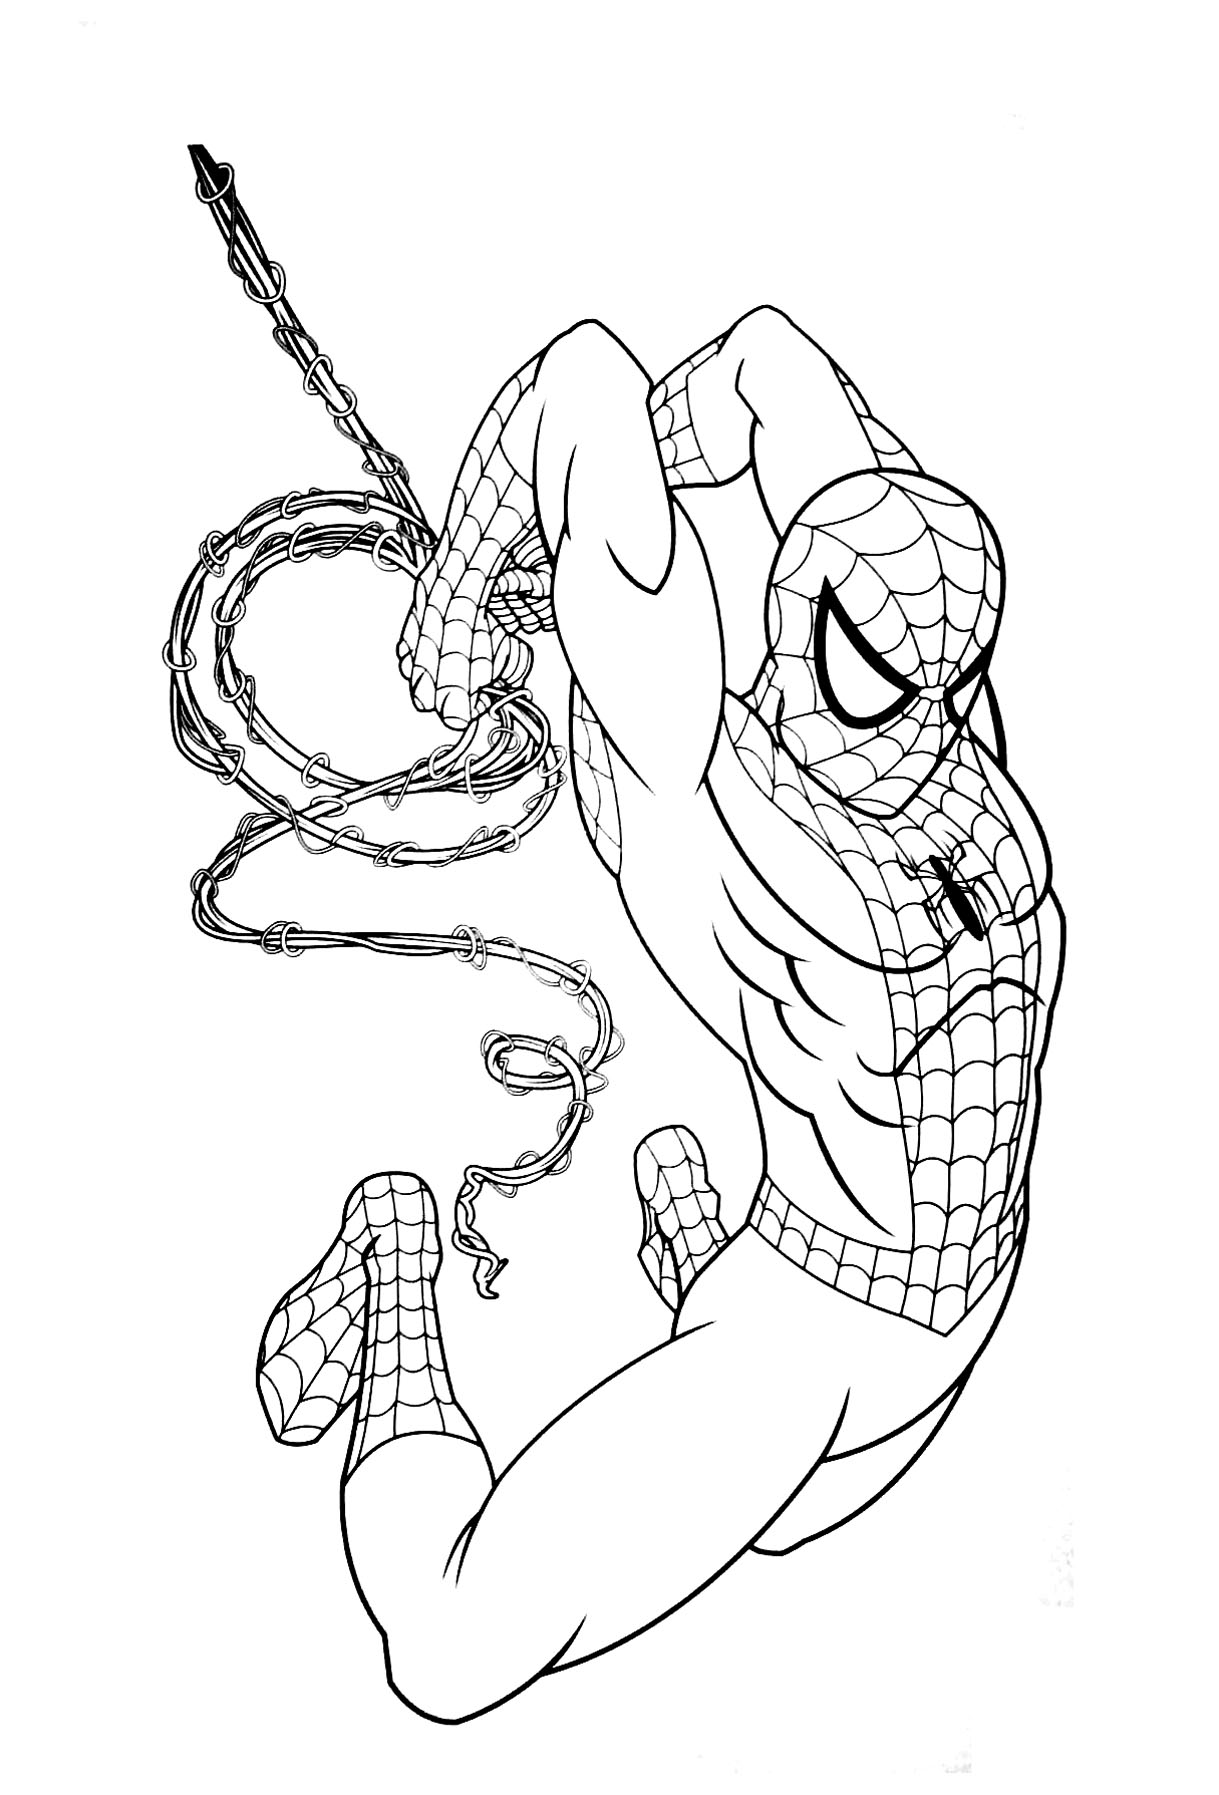 Free Spiderman Coloring Page To Print And Color